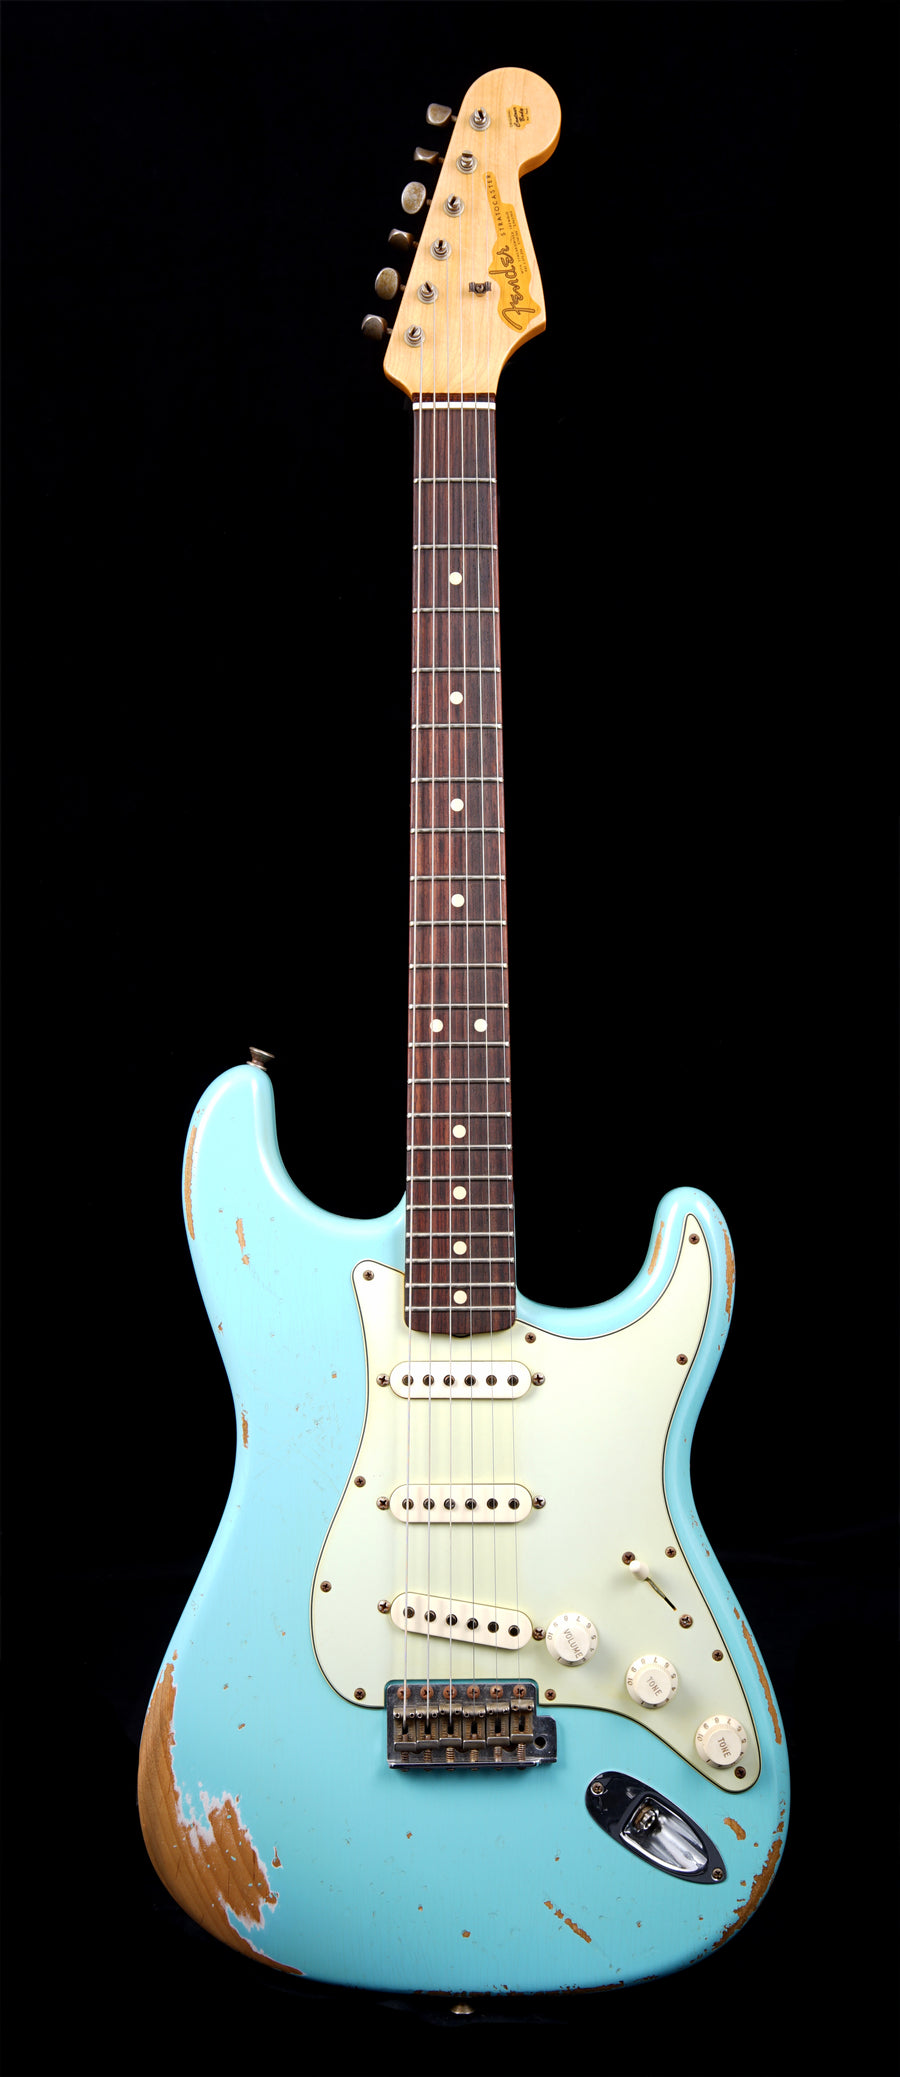 Fender Custom Shop '63 Heavy Relic Stratocaster - Daphne Blue